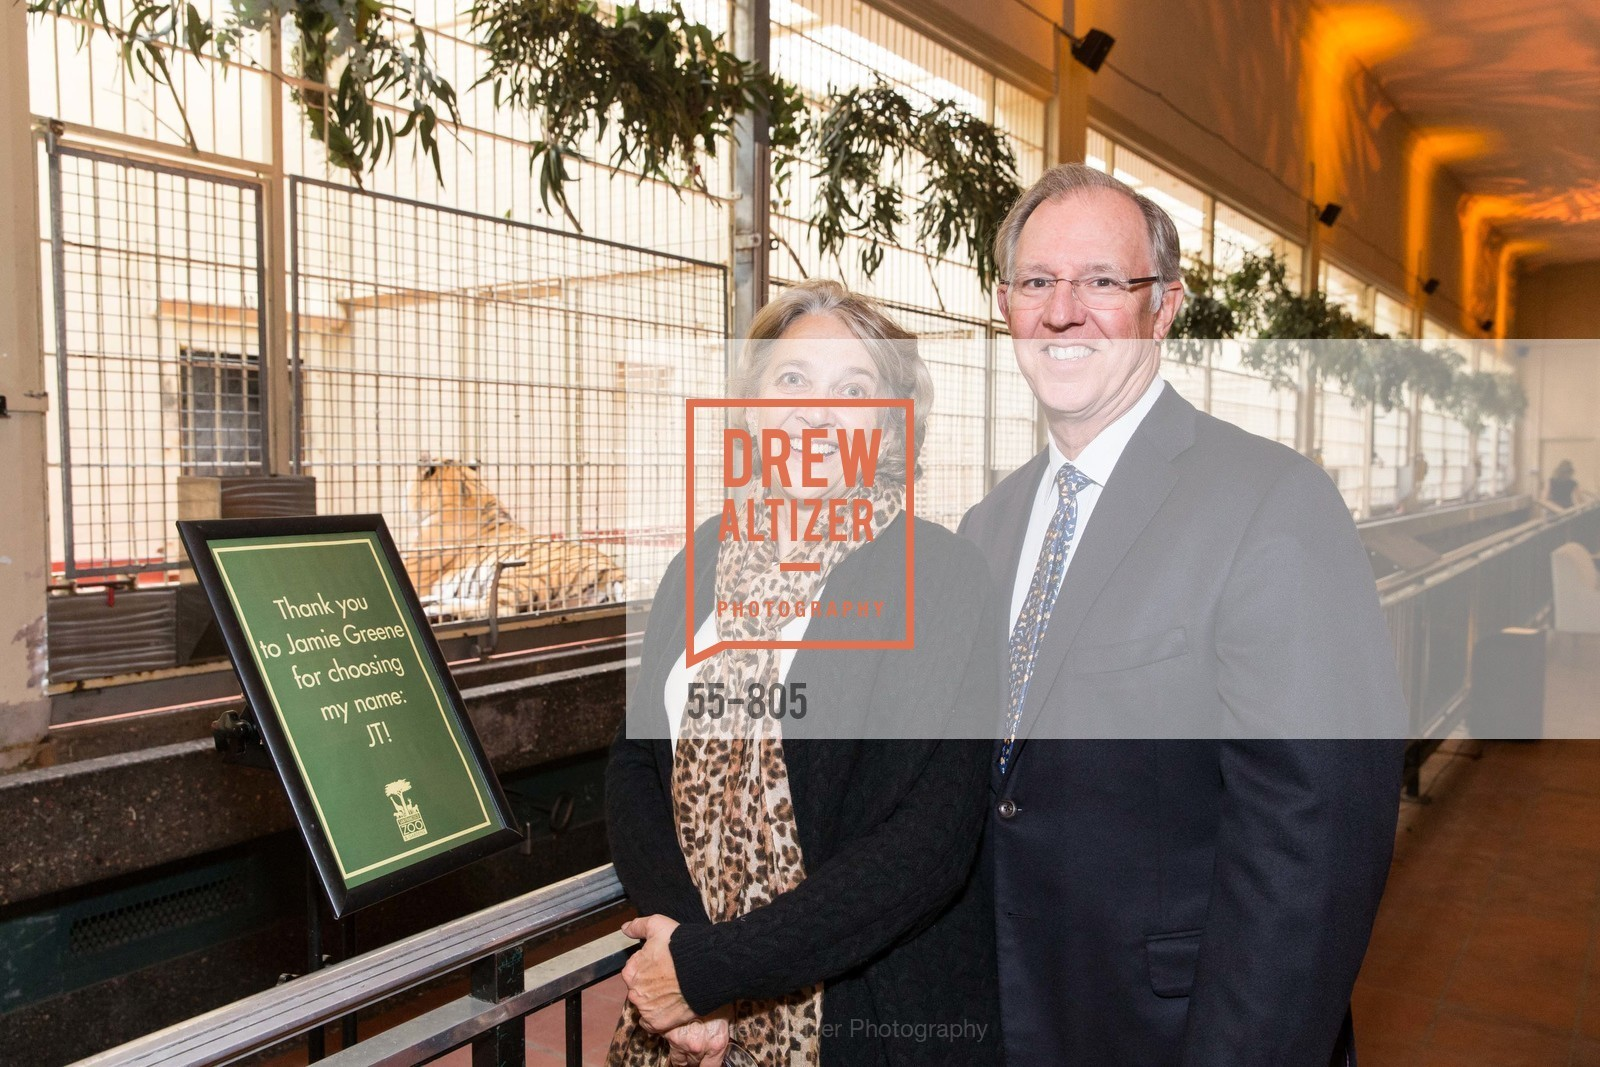 Marritje Greene, Jamie Greene, ZOOFEST 2015, US, April 26th, 2015,Drew Altizer, Drew Altizer Photography, full-service event agency, private events, San Francisco photographer, photographer California